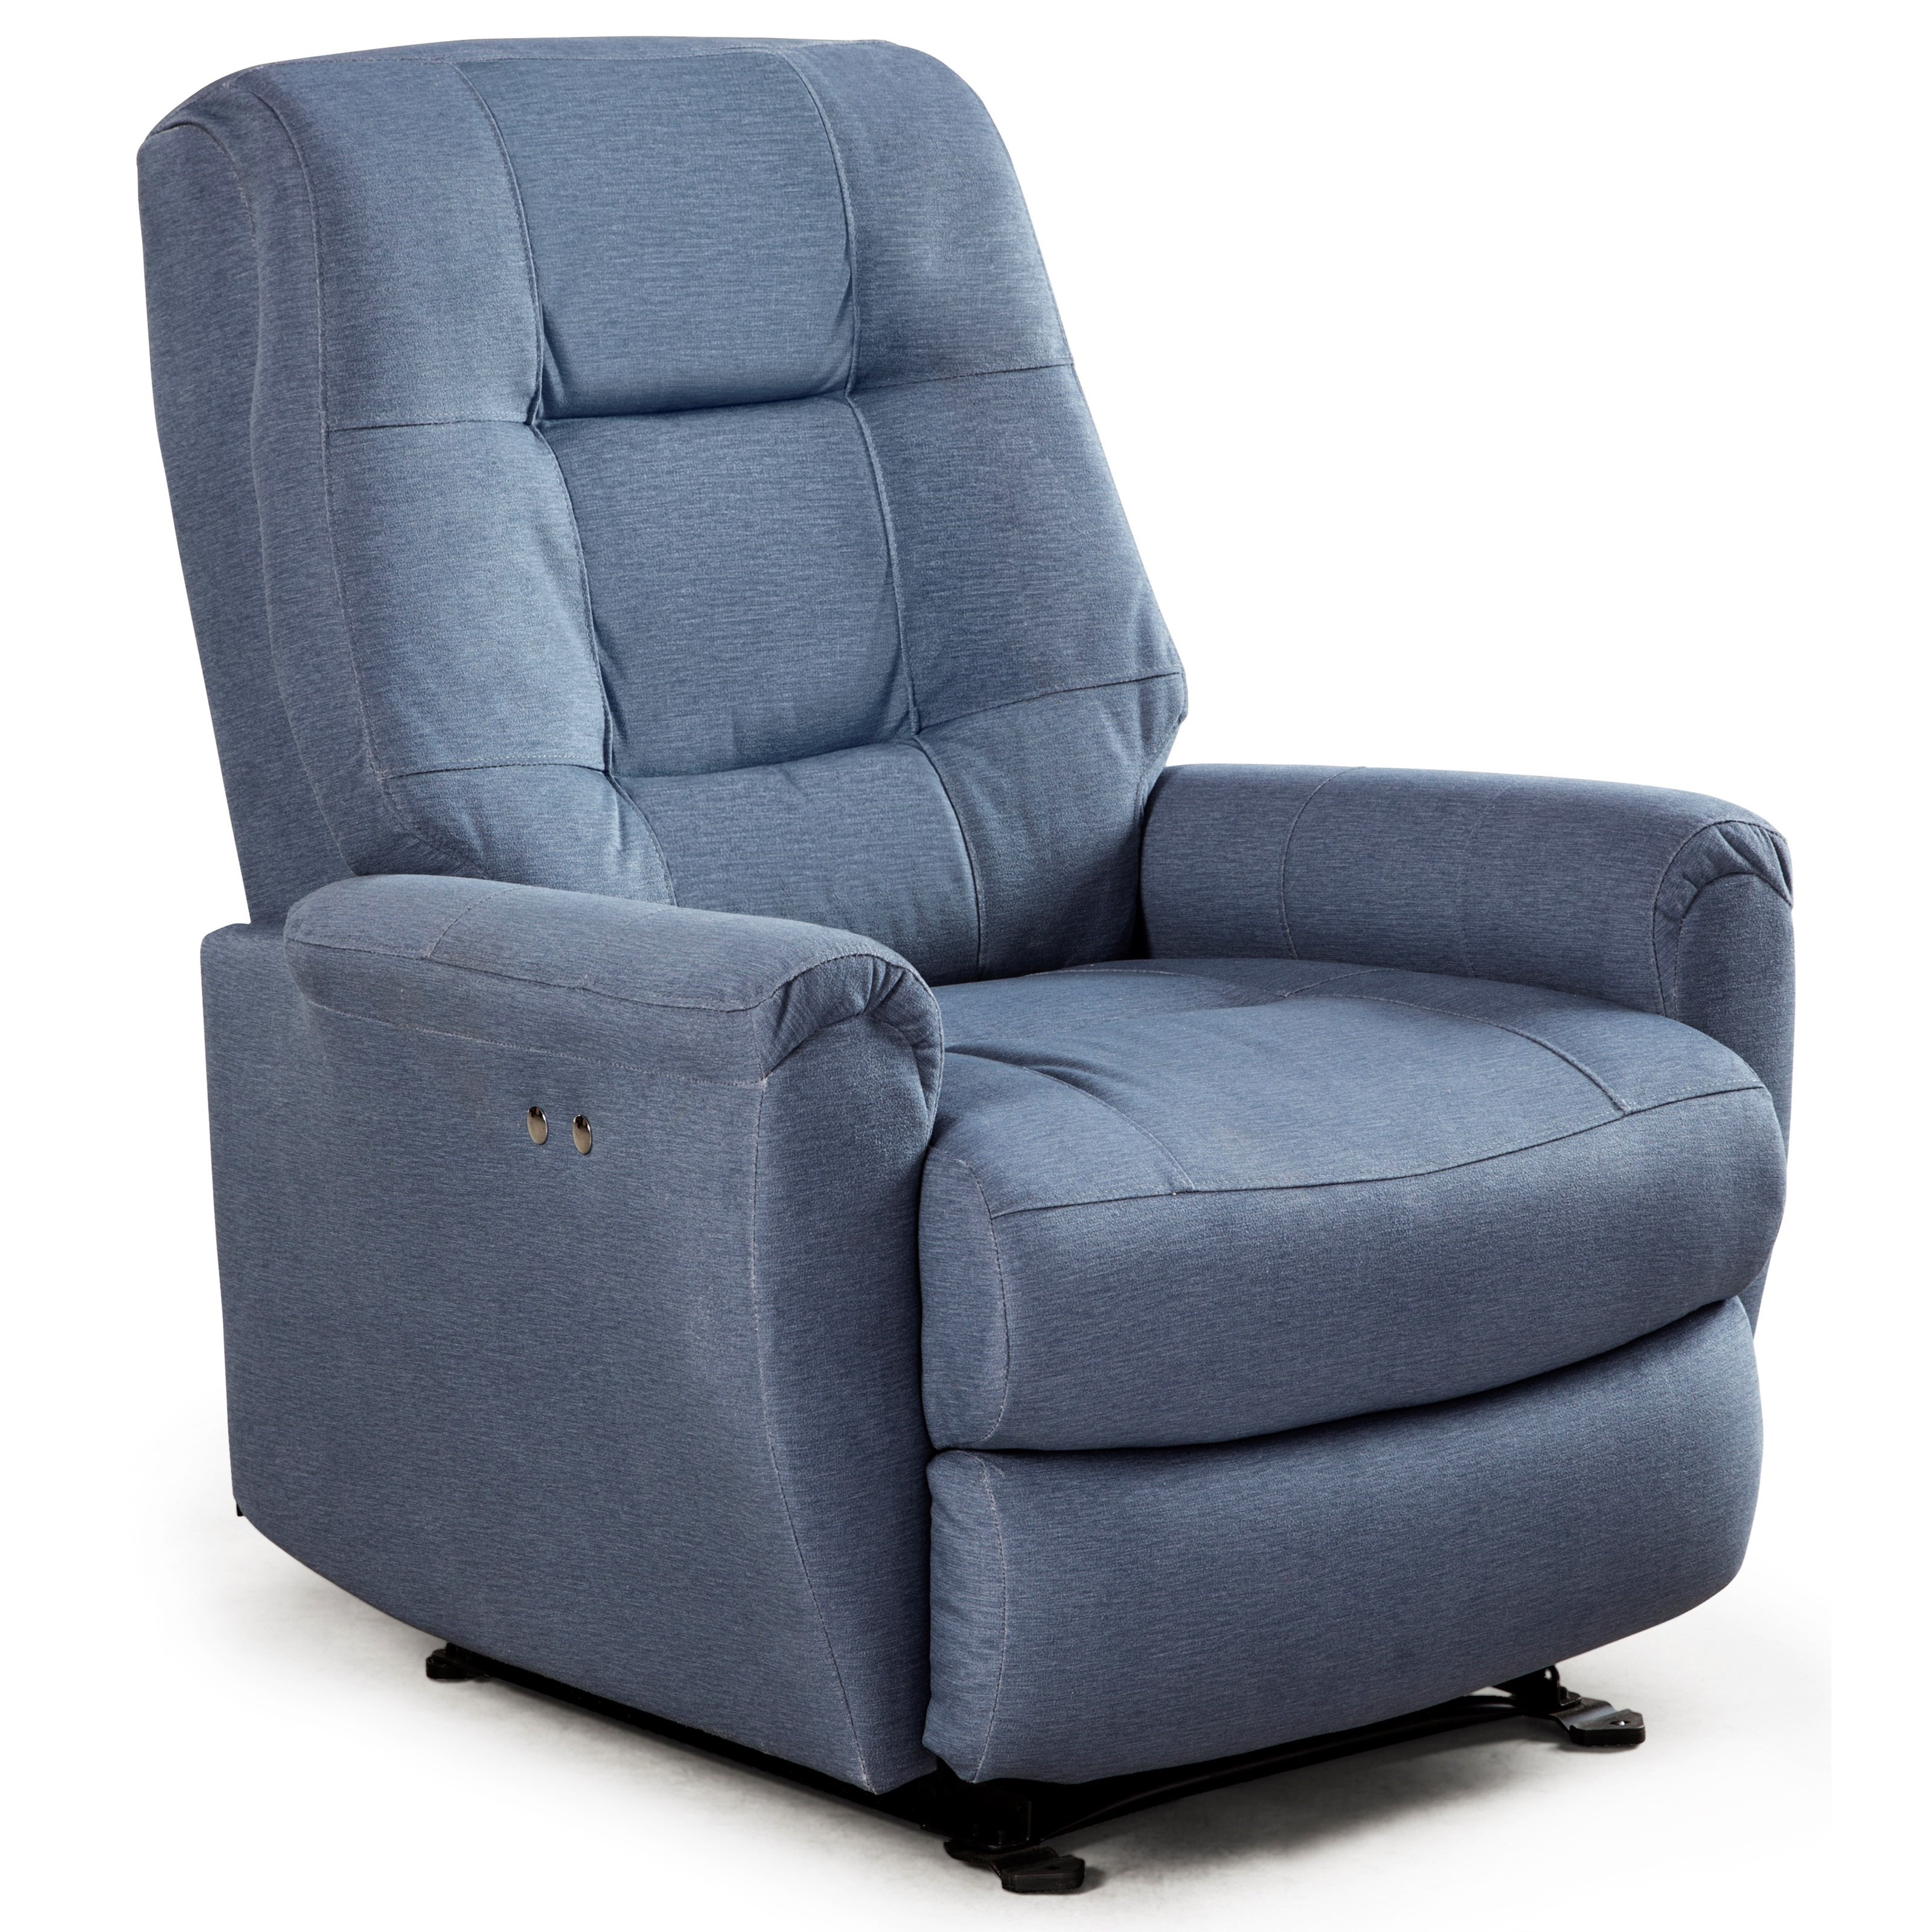 Petite Recliners Rocker Recliner by Best Home Furnishings at Baer's Furniture